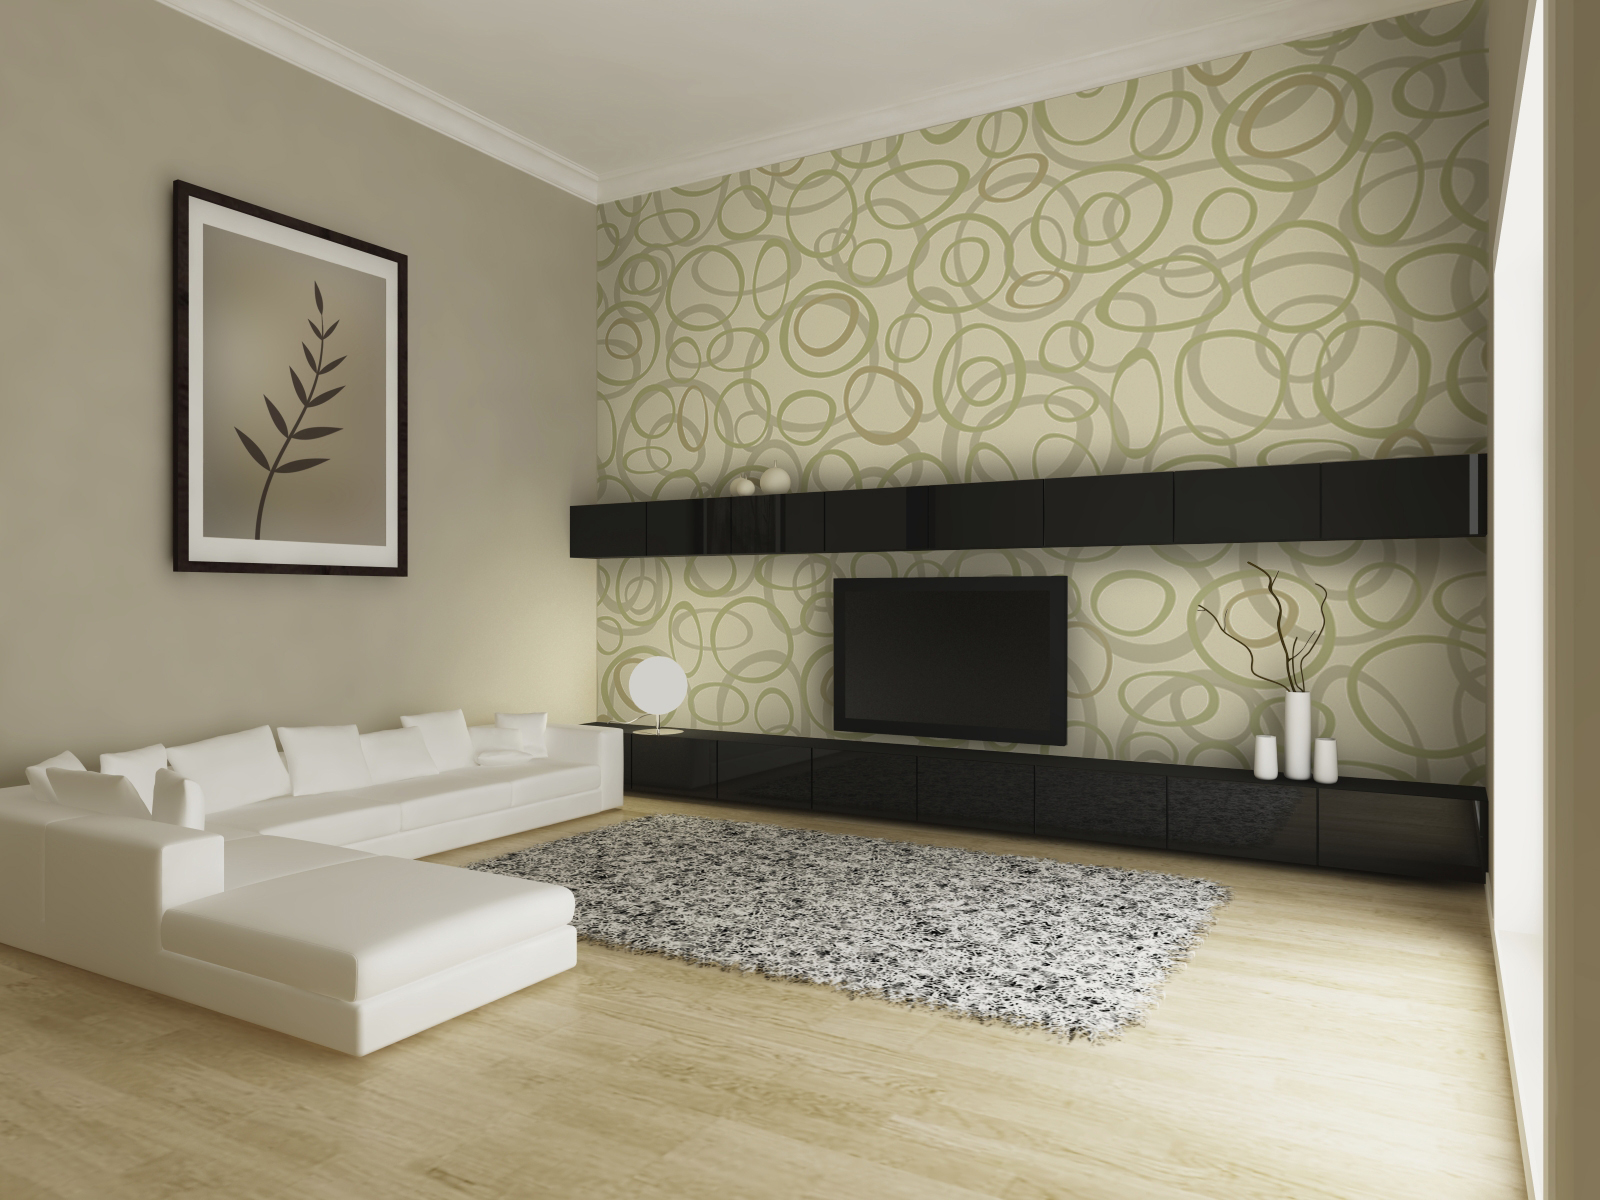 Interior design wallpaper 1600x1200 81460 for Interior decoration images